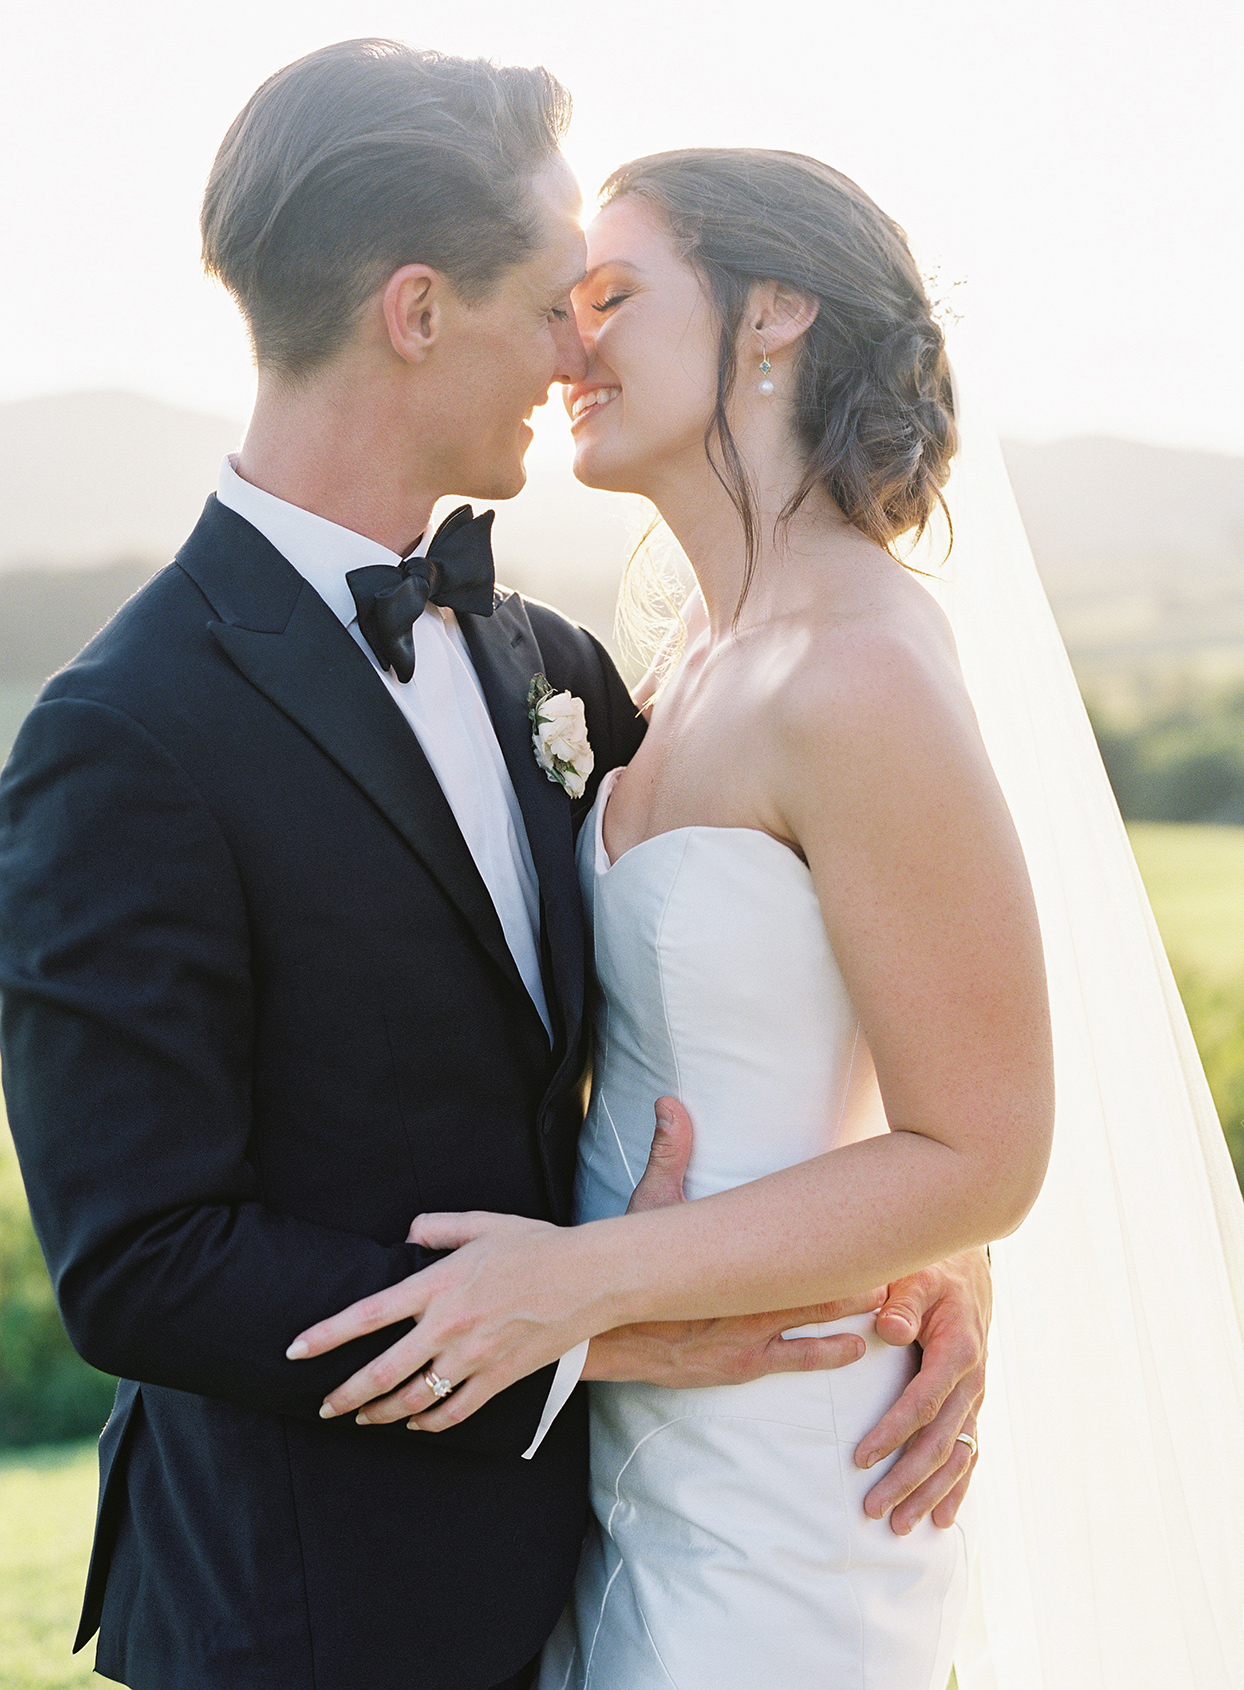 wedding couple embracing for portrait on farm